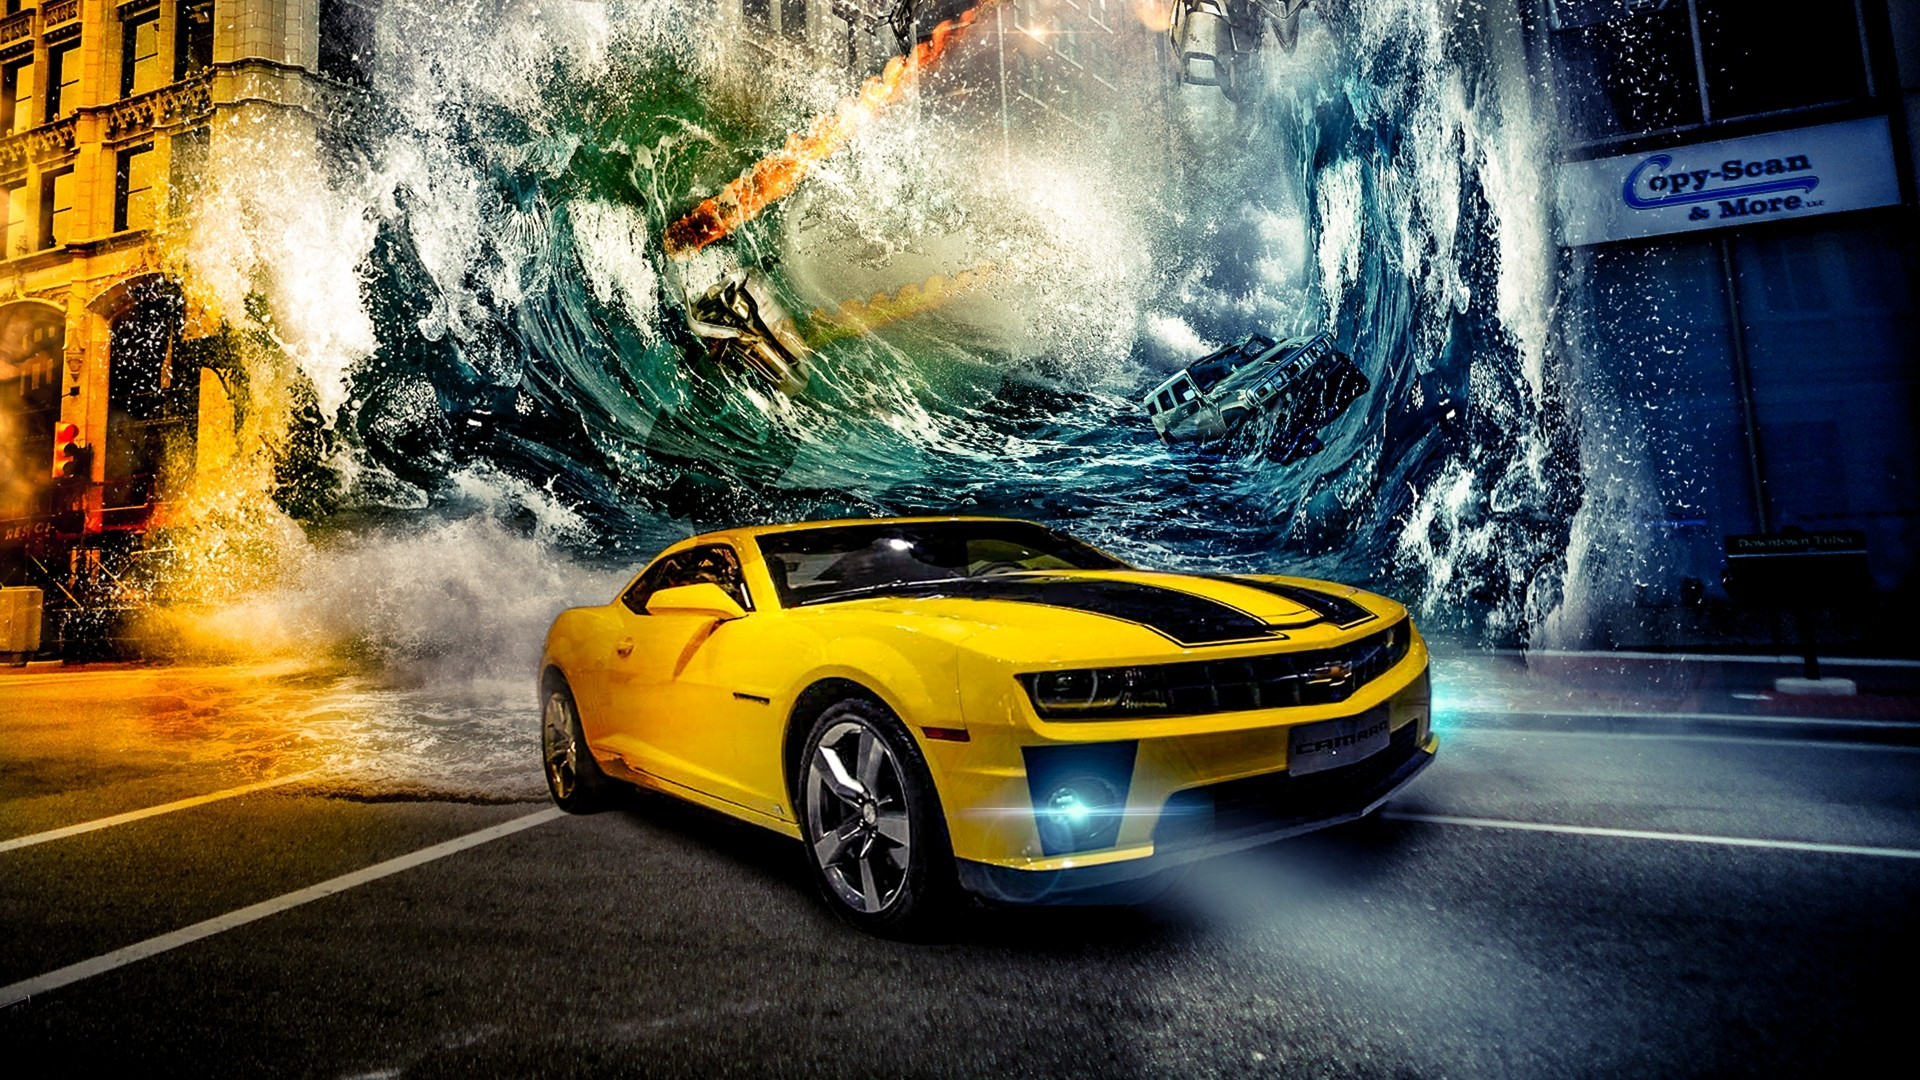 Cool Gold Cars Wallpapers furthermore Chevrolet Camaro Bumblebee in addition Jada Diecast Metal 1 24 Scale Transformers Movie Dark Knight Bumblebee With Coin besides My 2010 Camaro 1SS RS 189277208 besides Cool Gold Cars Wallpapers. on bumblebee camaro wallpaper